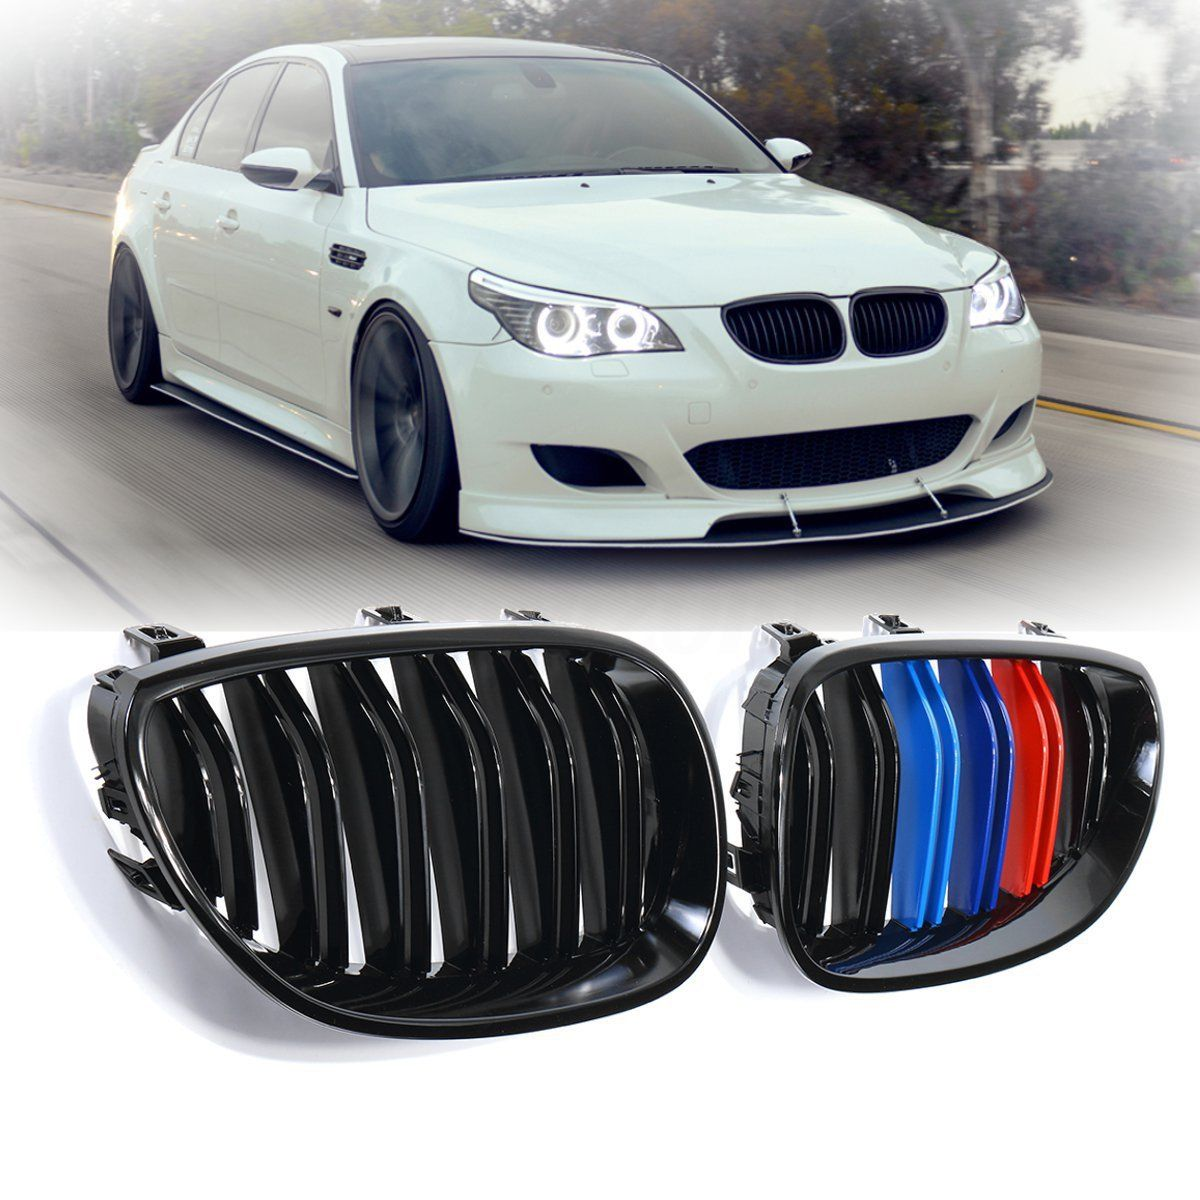 For <font><b>BMW</b></font> 5 series E60 <font><b>E61</b></font> 2003 2004 2005 2006 2007 2008 2009 Car Glossy Black M-Color Red Blue Green Color Front Kidney Grilles image